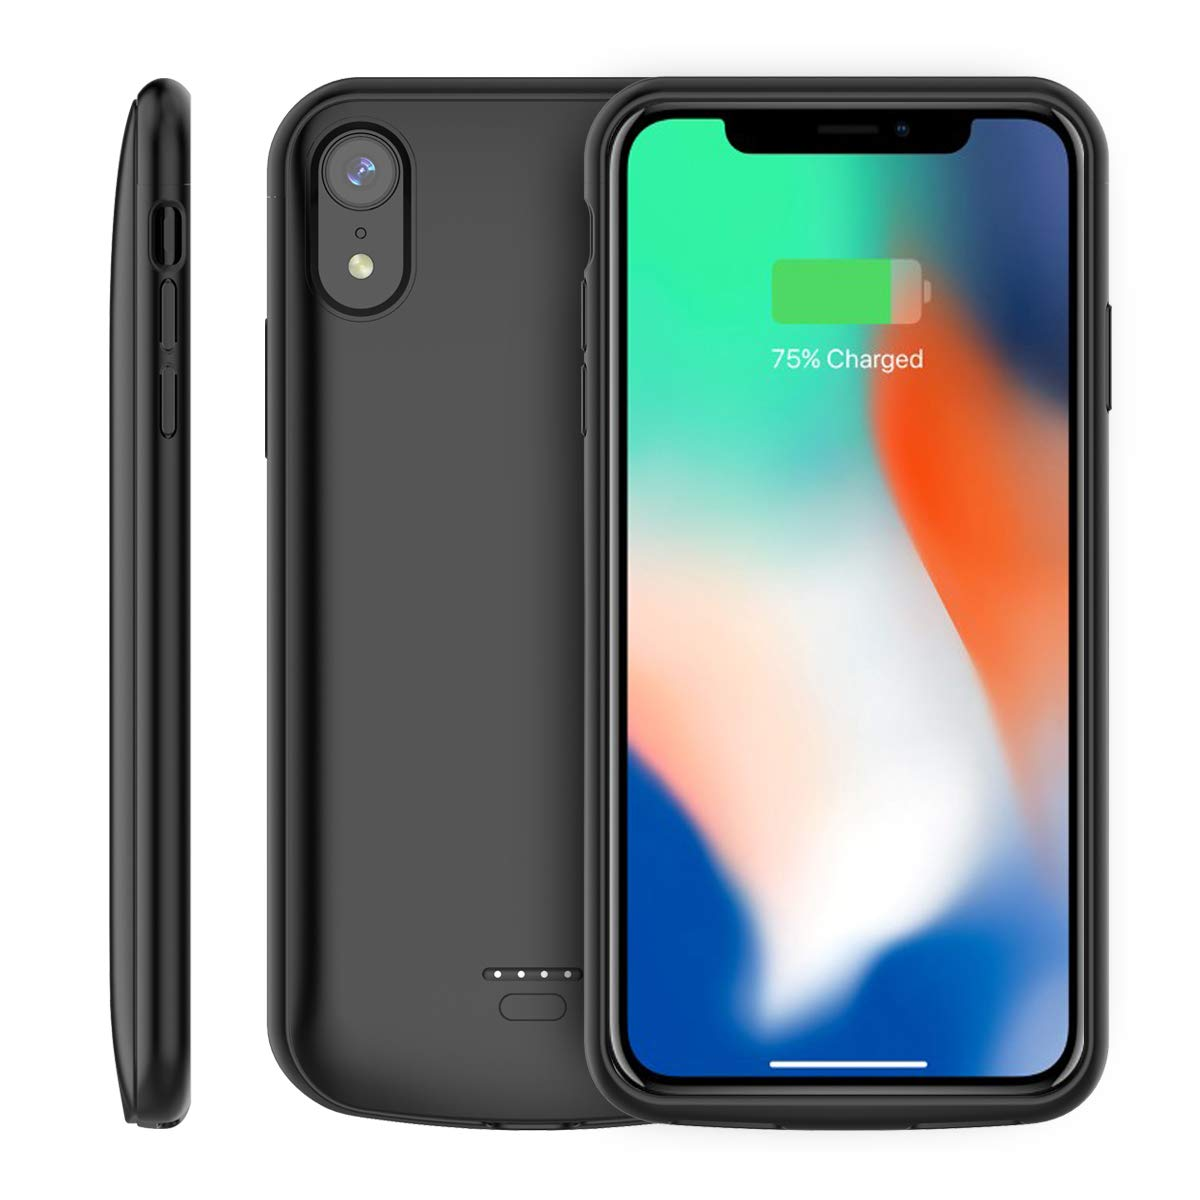 LifeePro Compatible iPhone Xr Battery Case, Slim 5000mAh Rechargeable Portable Battery Charger Pack External Power Bank Backup Charging Protective Case Replacement for iPhone Xr (2018) 6.1 inch Black